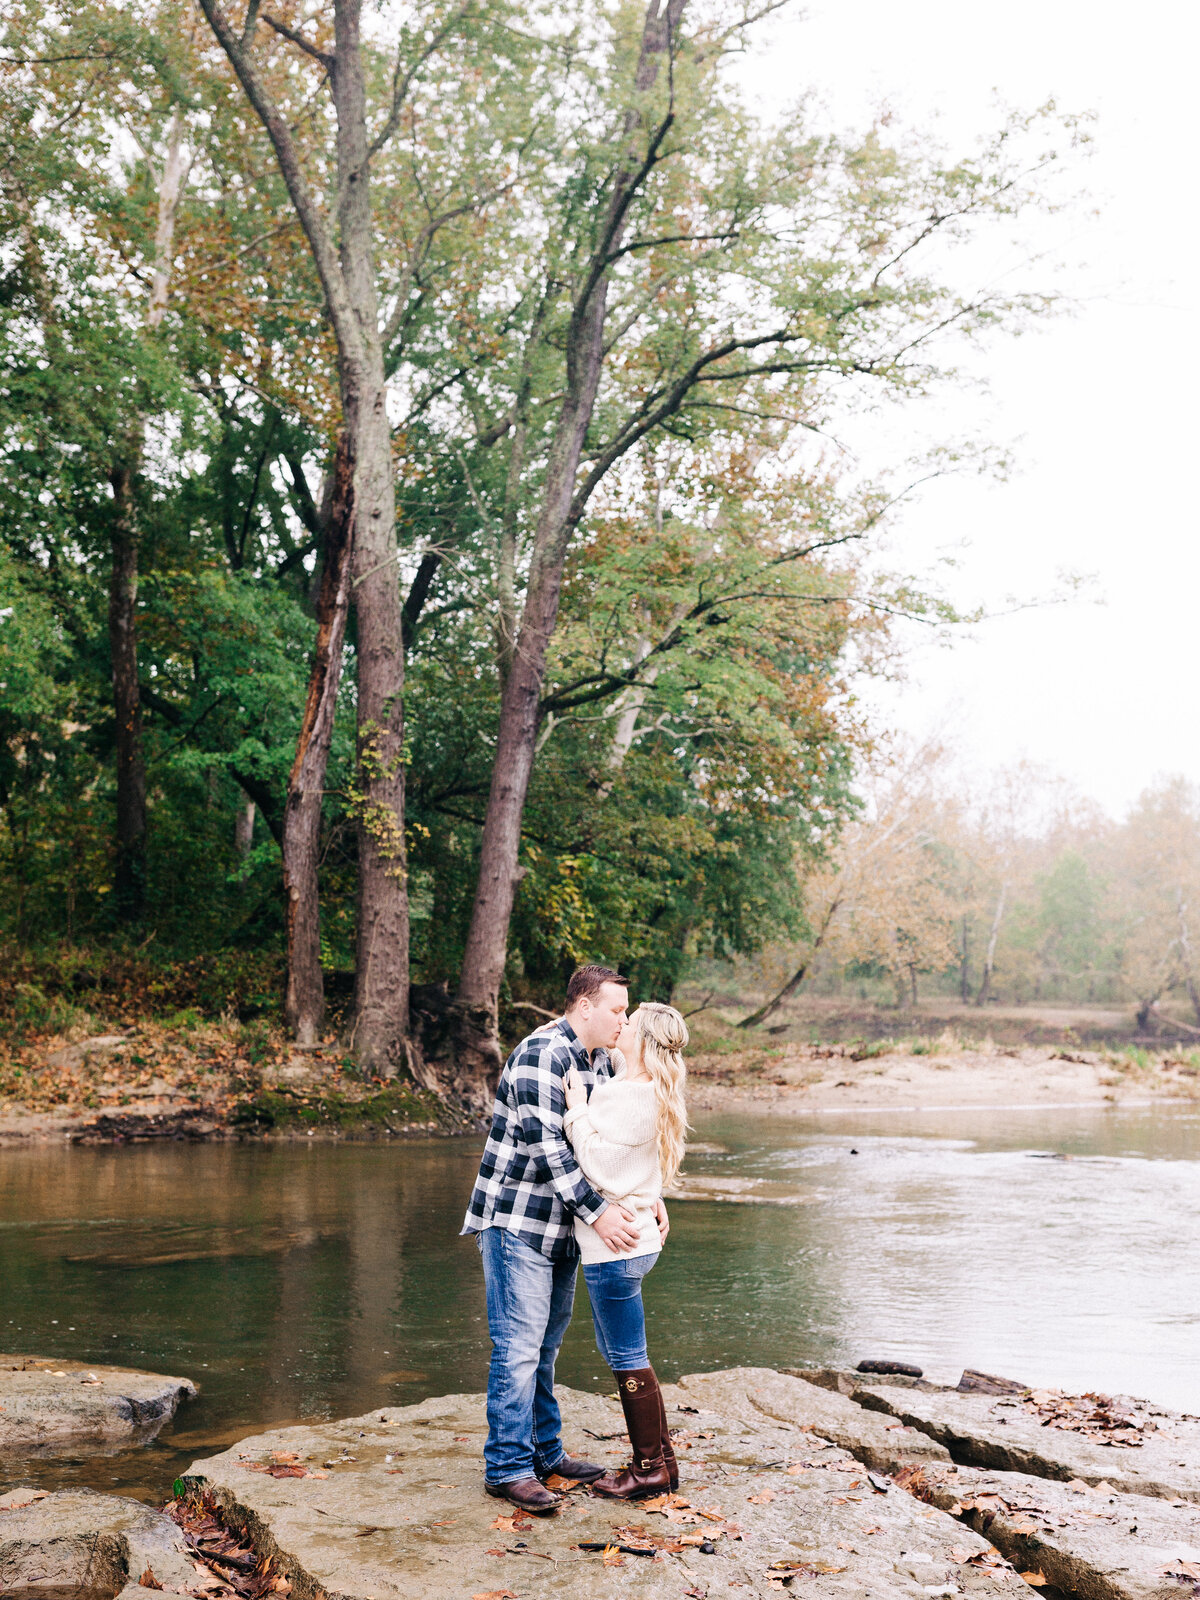 Dorothy_Louise_Photography_Alyssa_Drew_Indiana_Engagement_Cataract_Falls-65